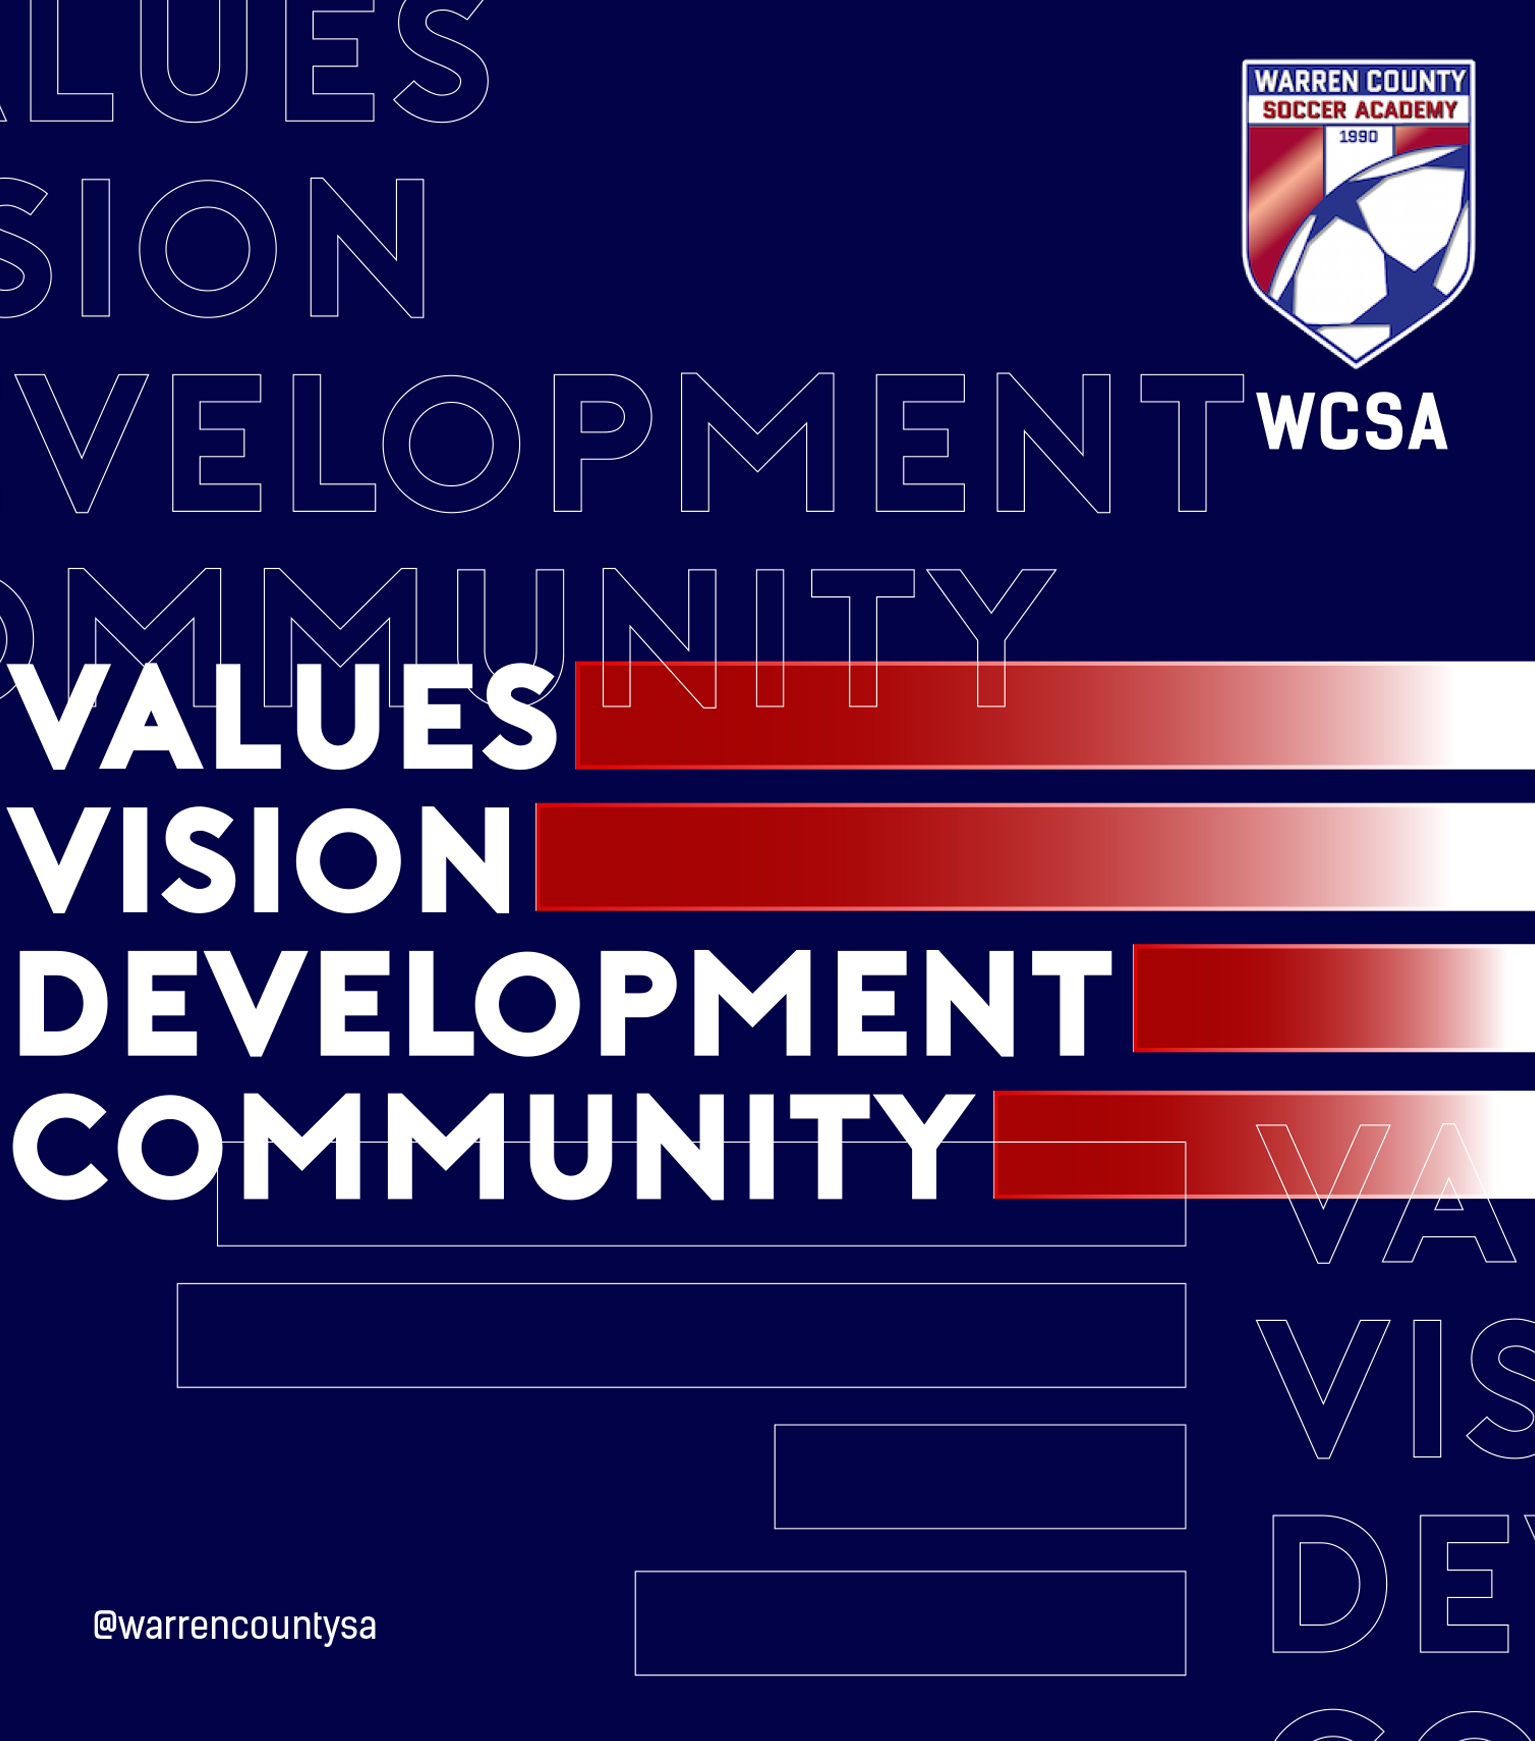 WCSA Values, Vision, Development, Community